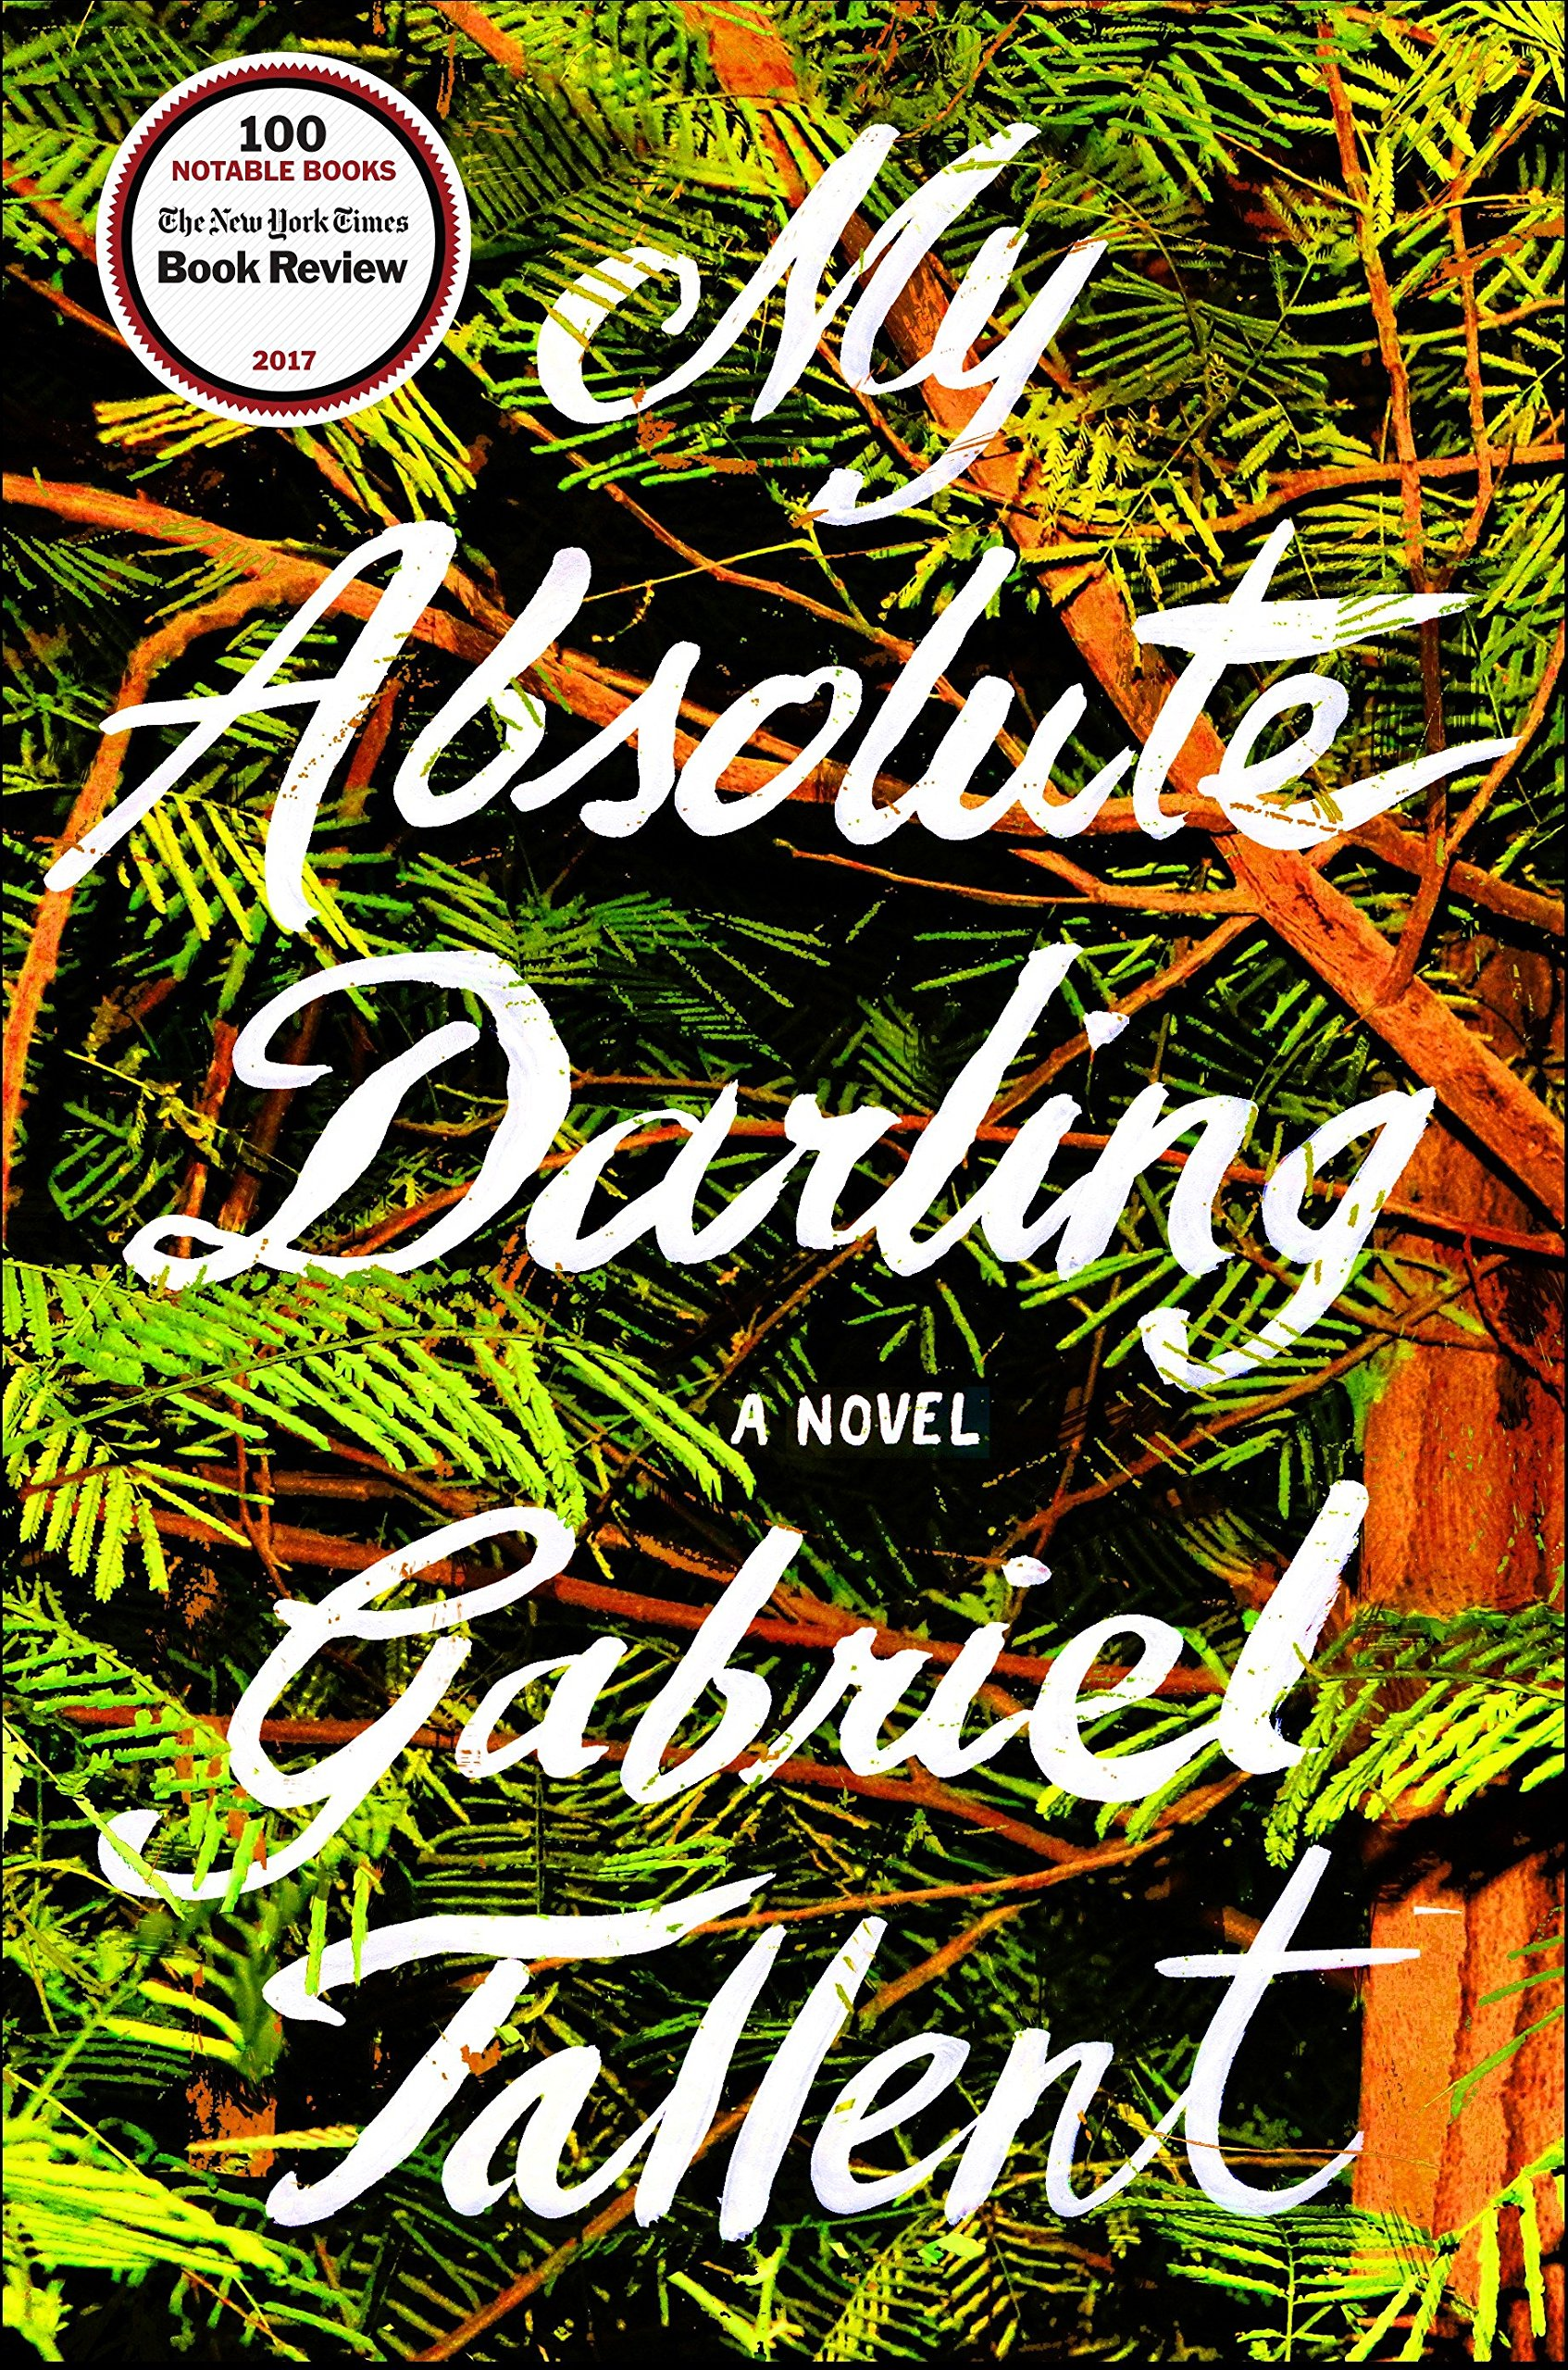 Amazon Com My Absolute Darling A Novel 9780735211179 Gabriel